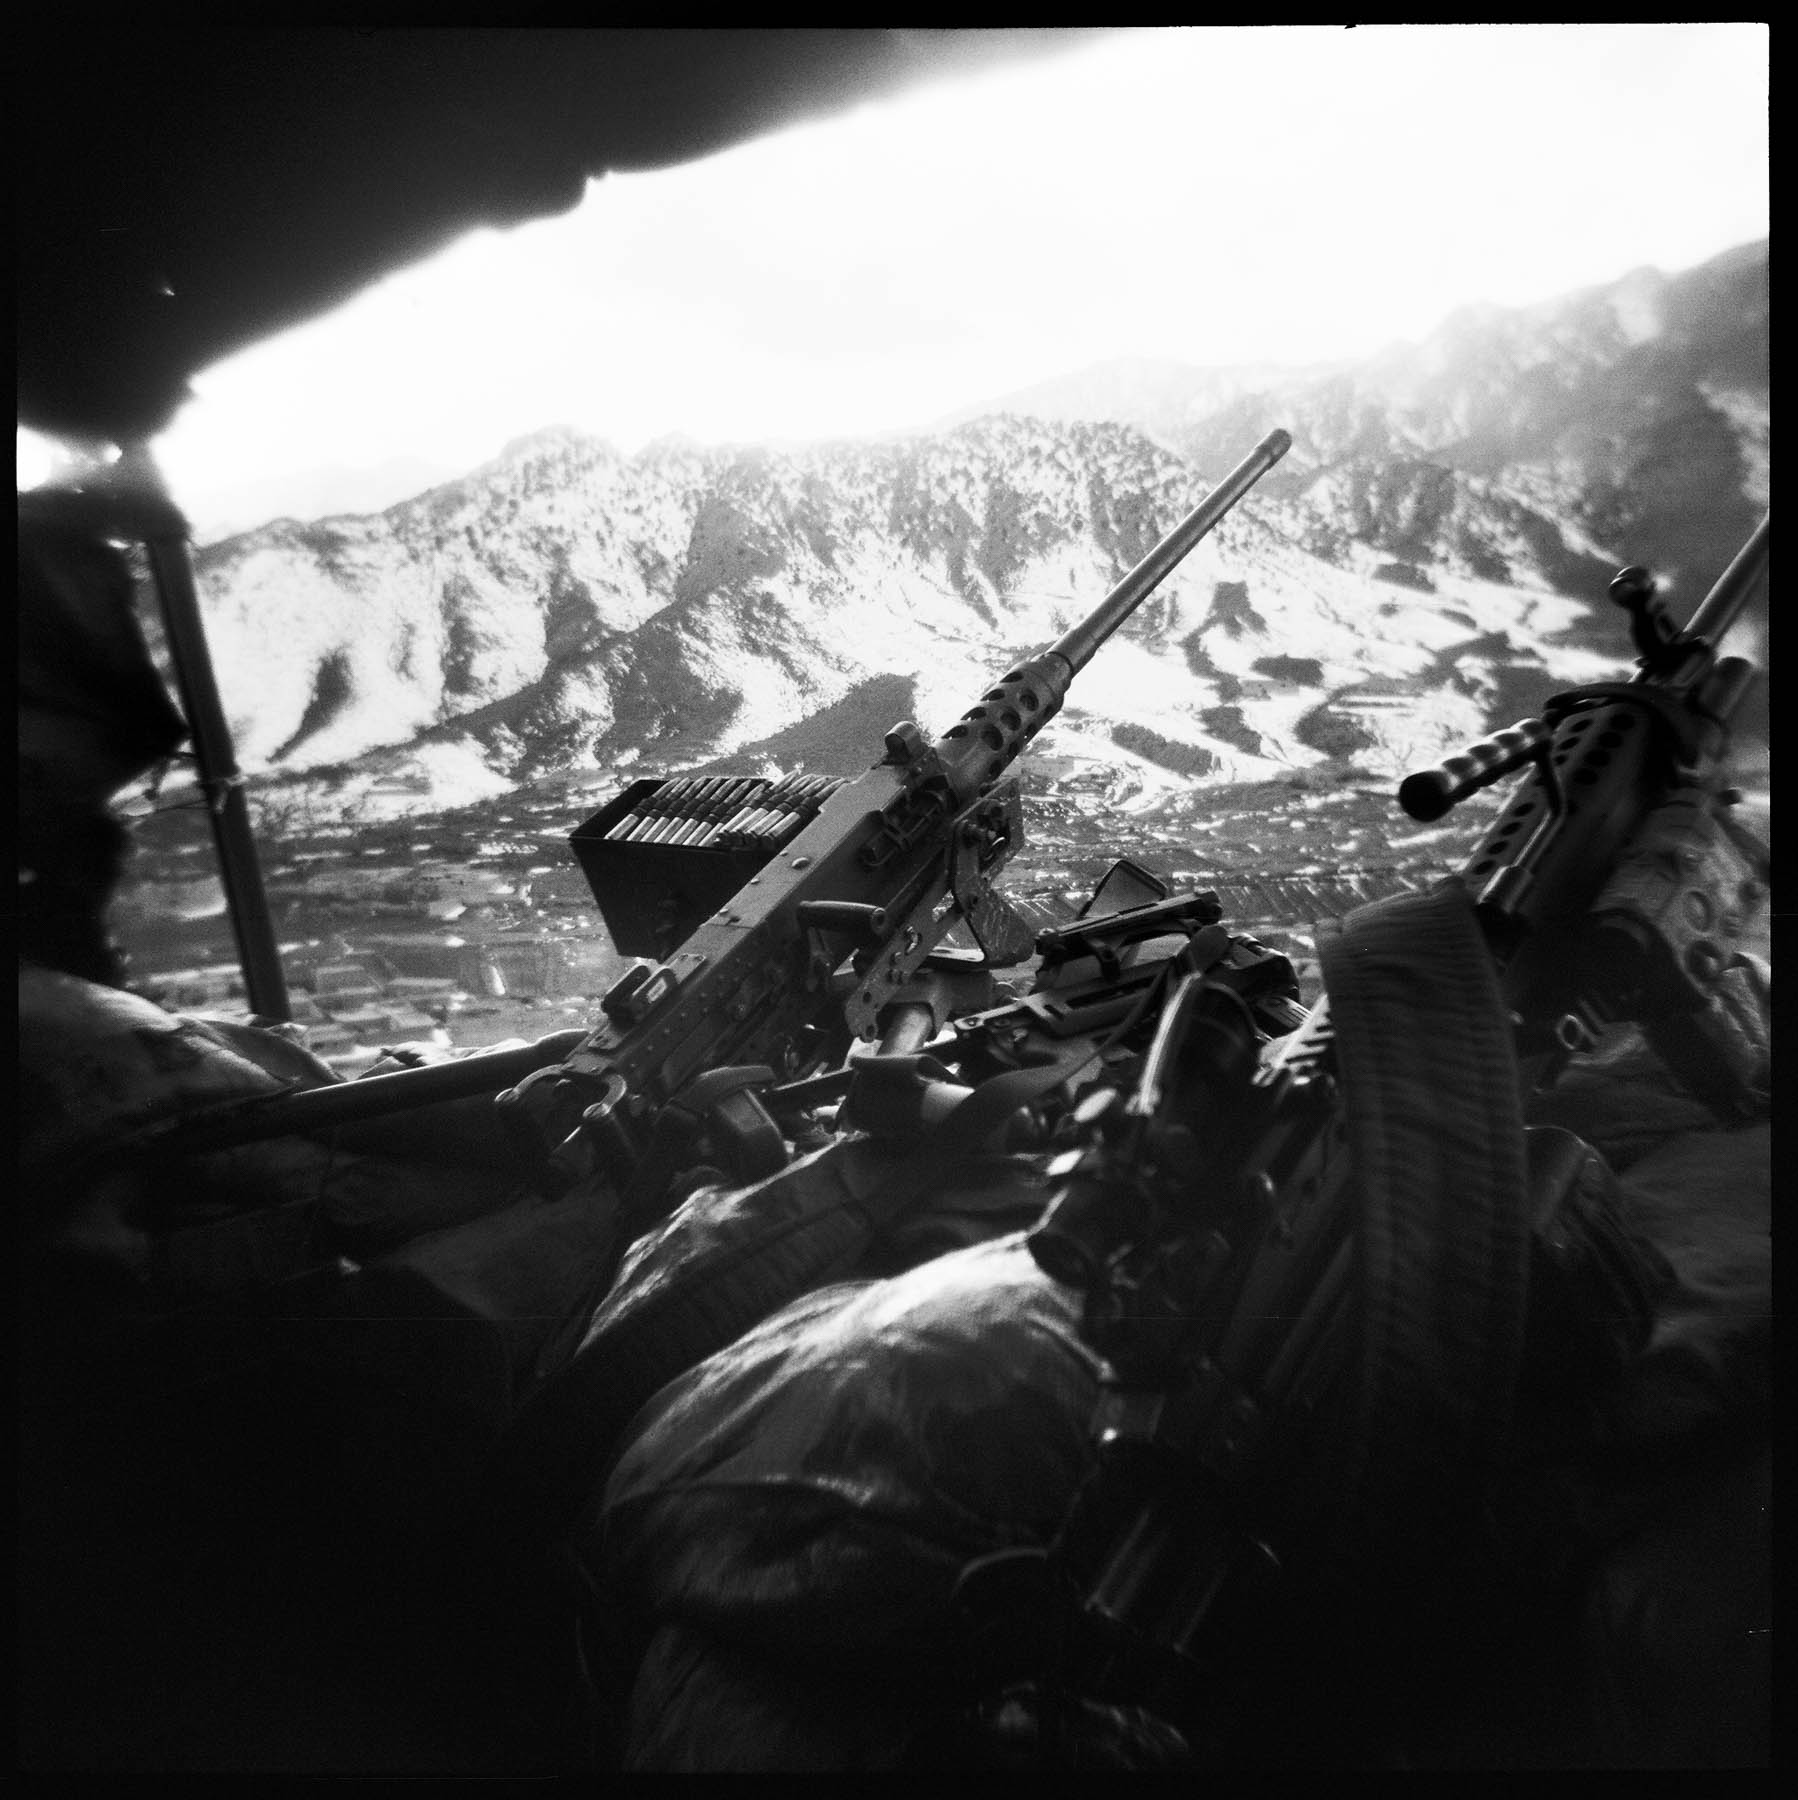 Weapons perch at an overwatch outpost above COP Munoz in Gayan District, Paktika Province, Afghanistan. 2011.